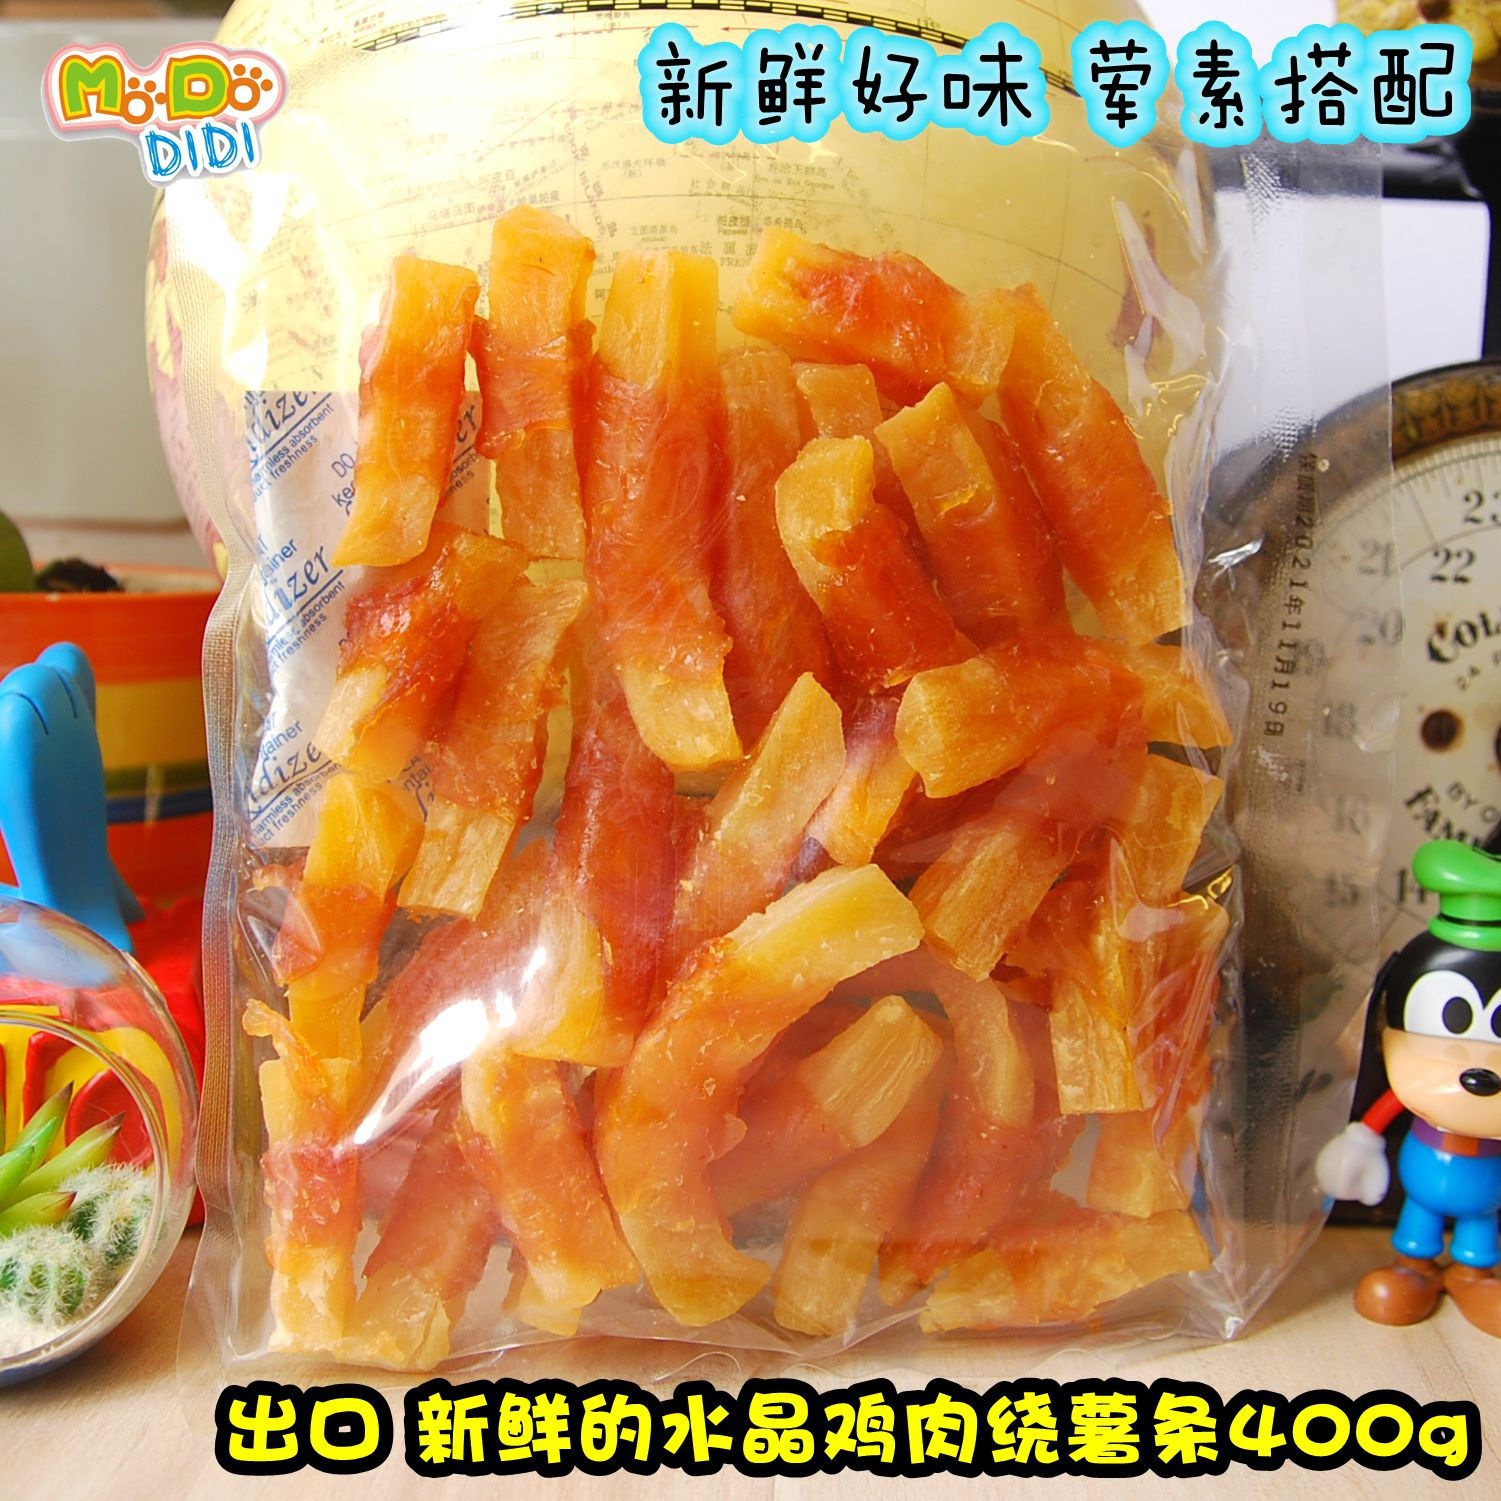 To Xiaxin, you can experience the fresh export of chicken and French fries, 400g meat and vegetable with dog snack staple food